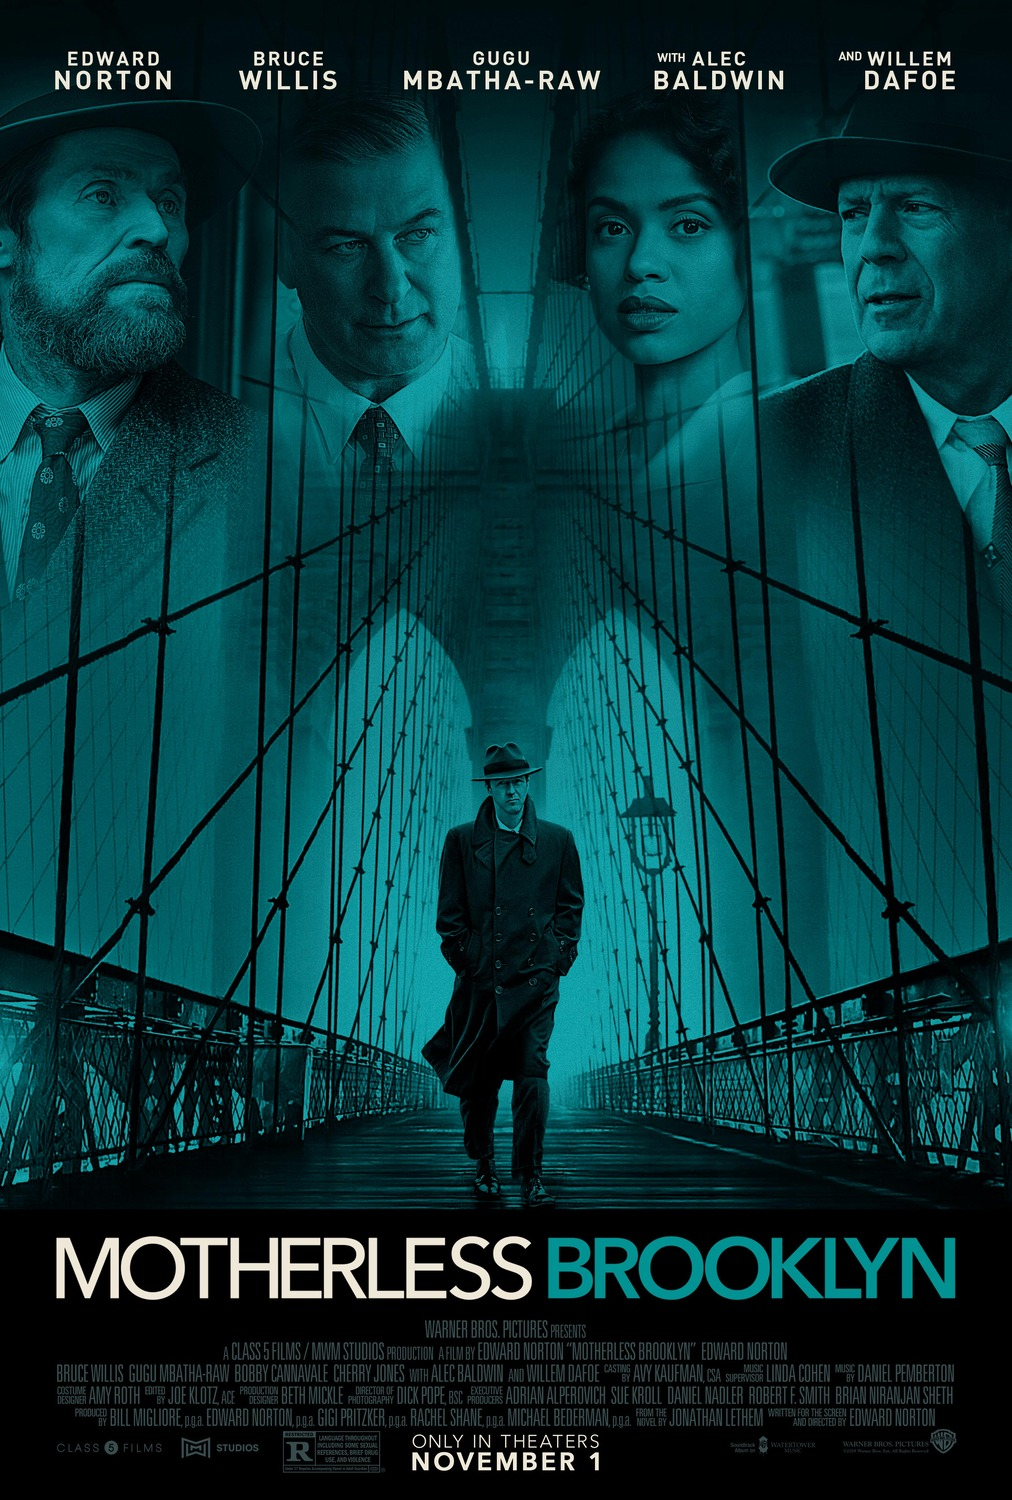 Extra Large Movie Poster Image for Motherless Brooklyn (#2 of 2)